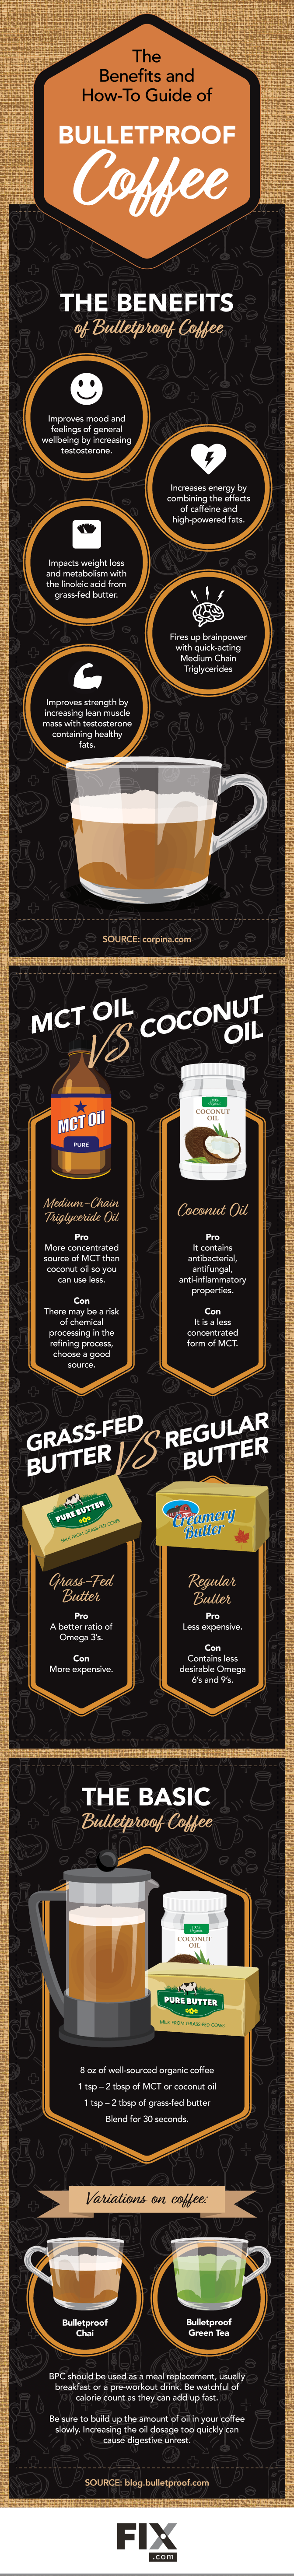 The Benefits and How-To Guide of Bulletproof Coffee #infographic